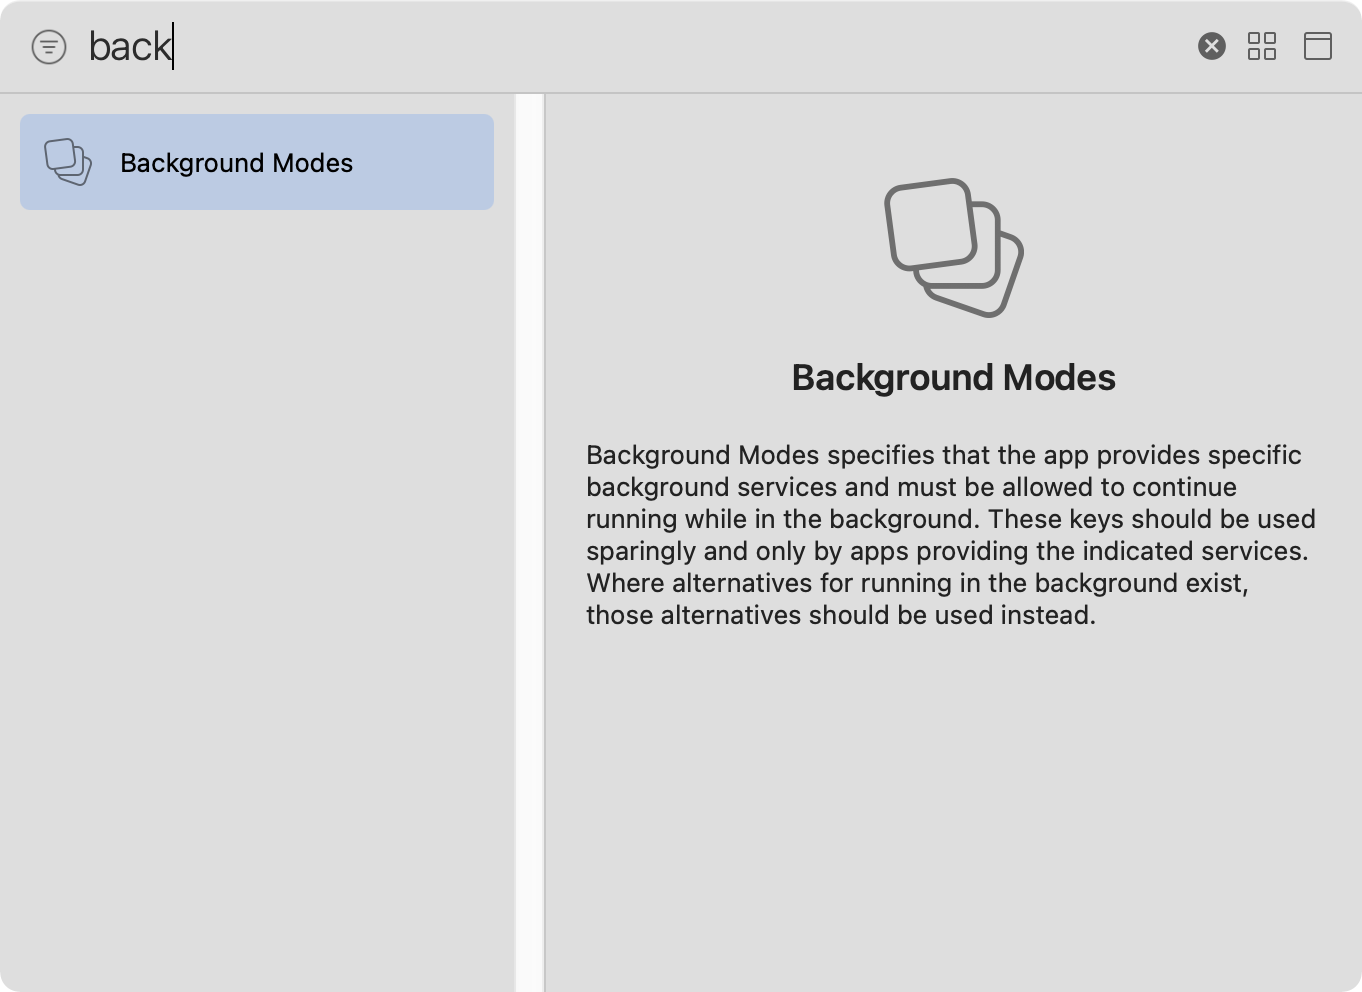 The background modes capability in the capability search pop-up